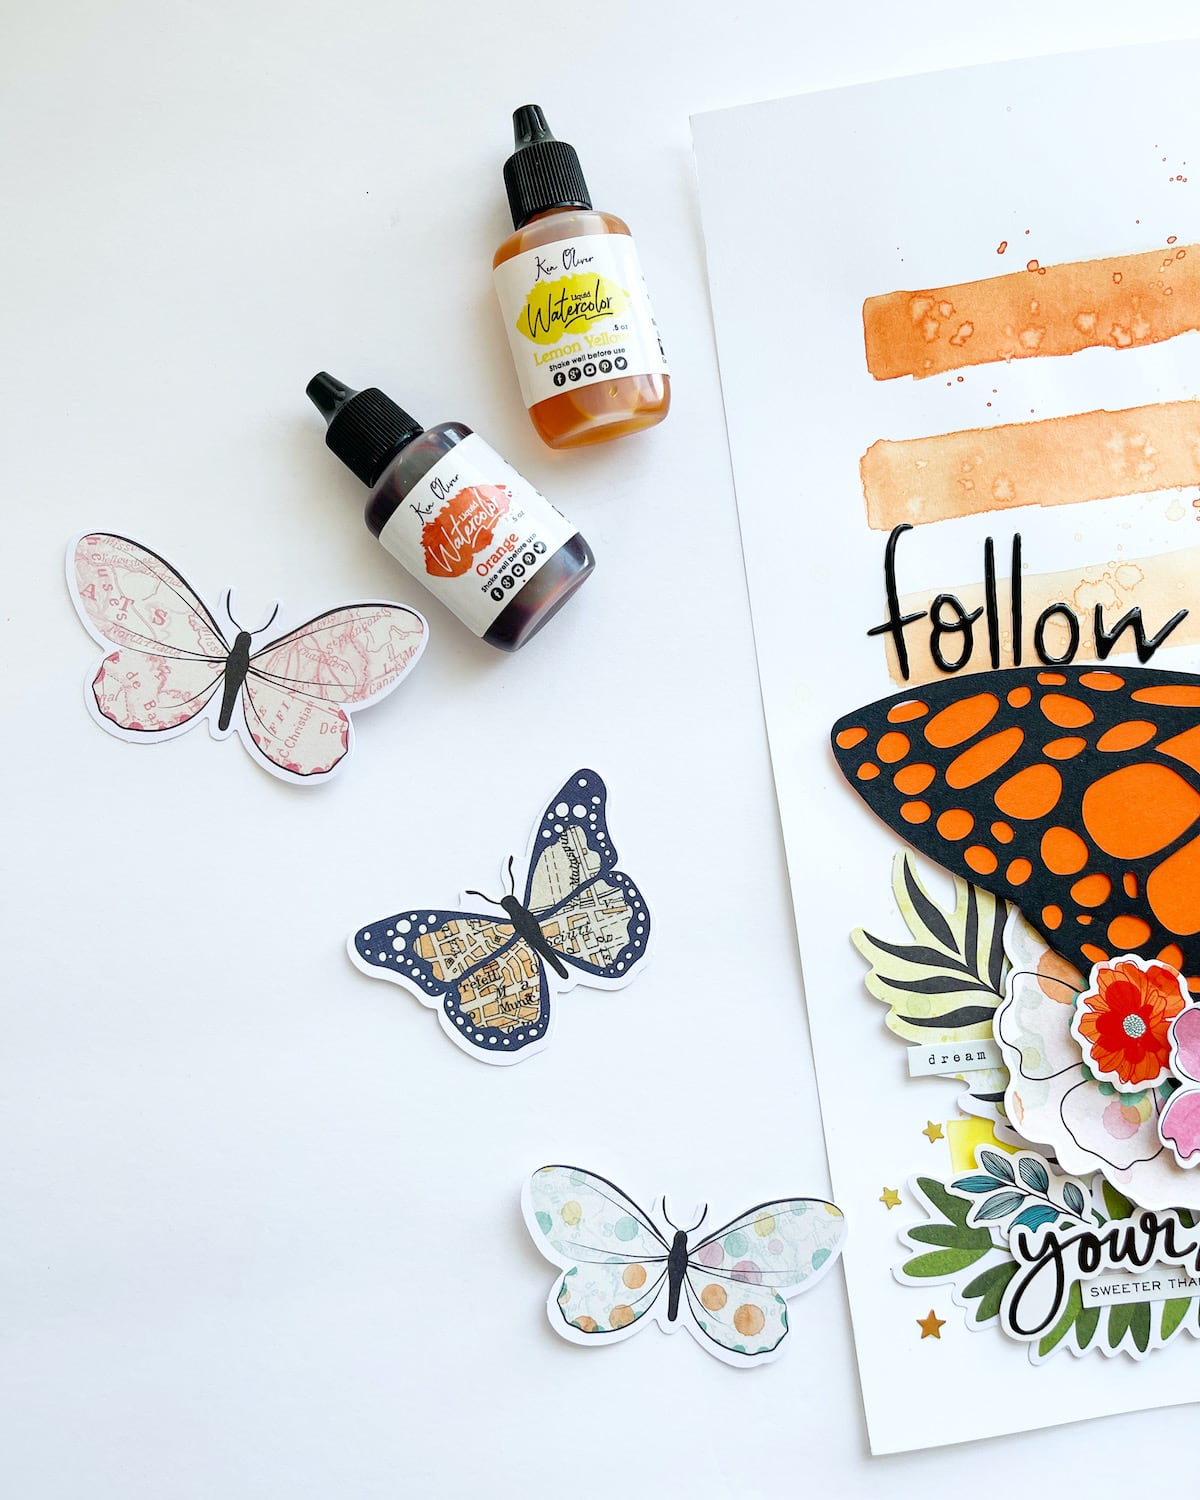 Adding watercolors to the background of butterfly scrapbook layout